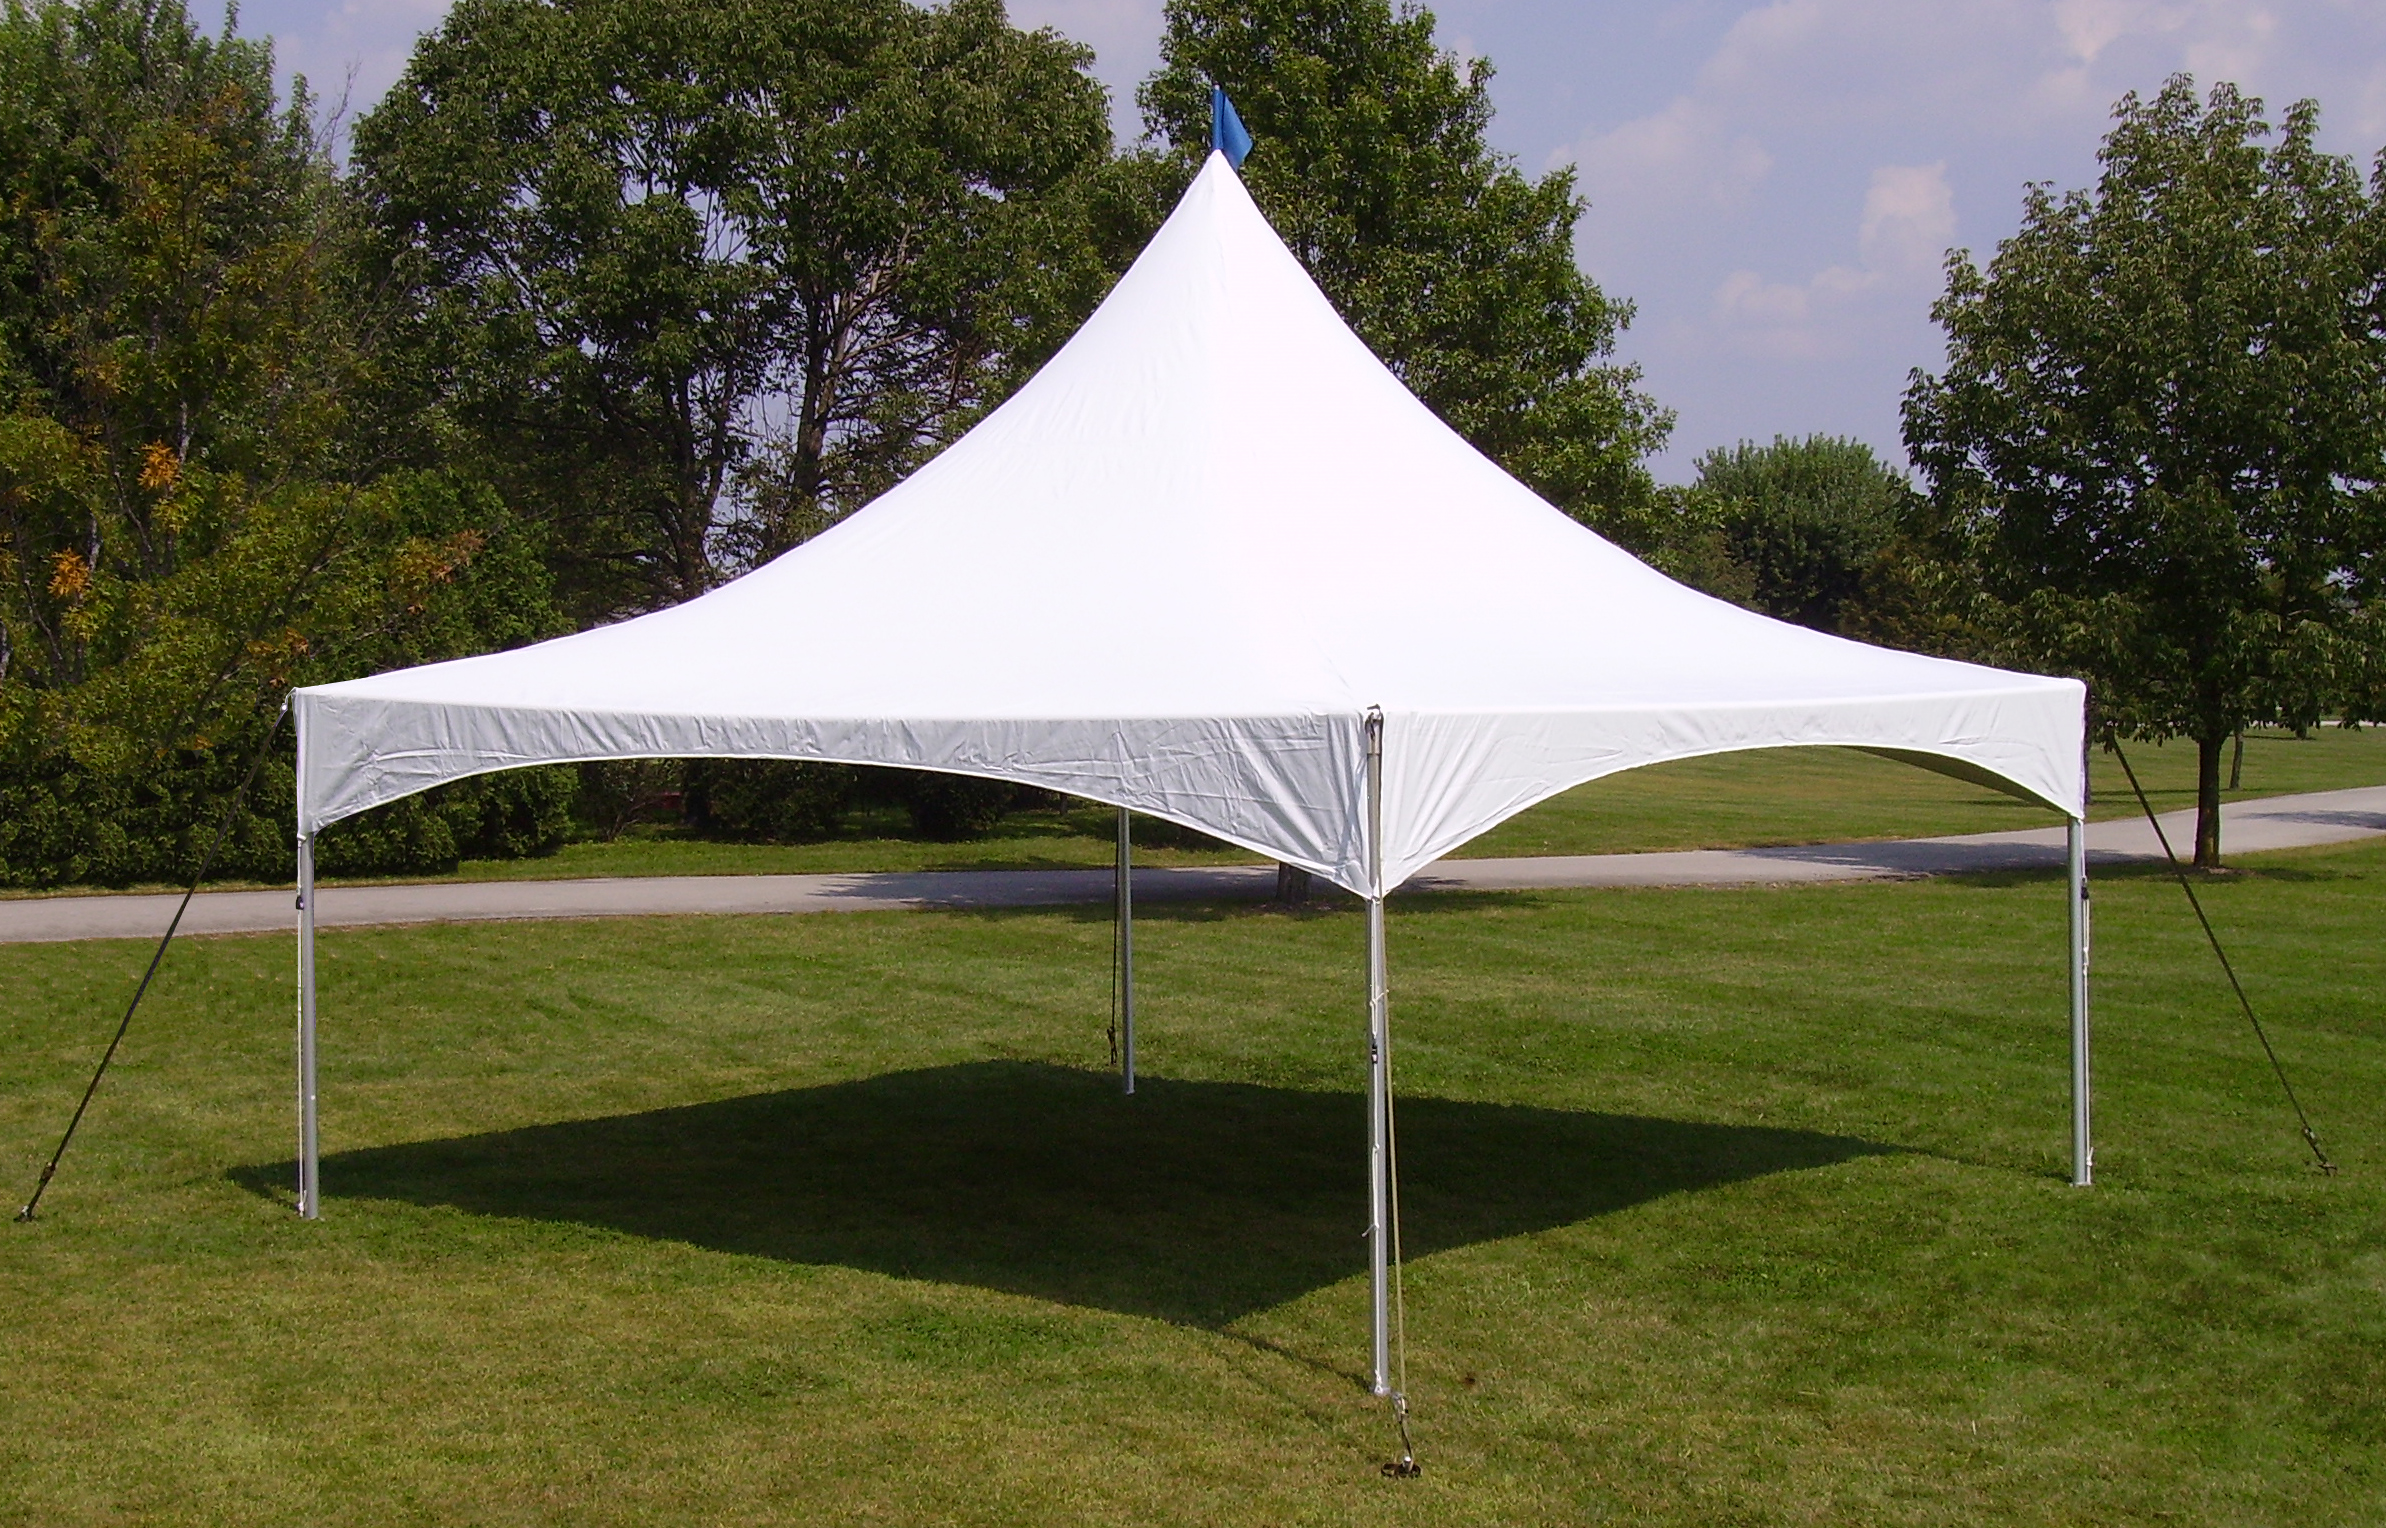 20x20 Pinnacle CC Frame Tent - 2007 (21)new.jpg